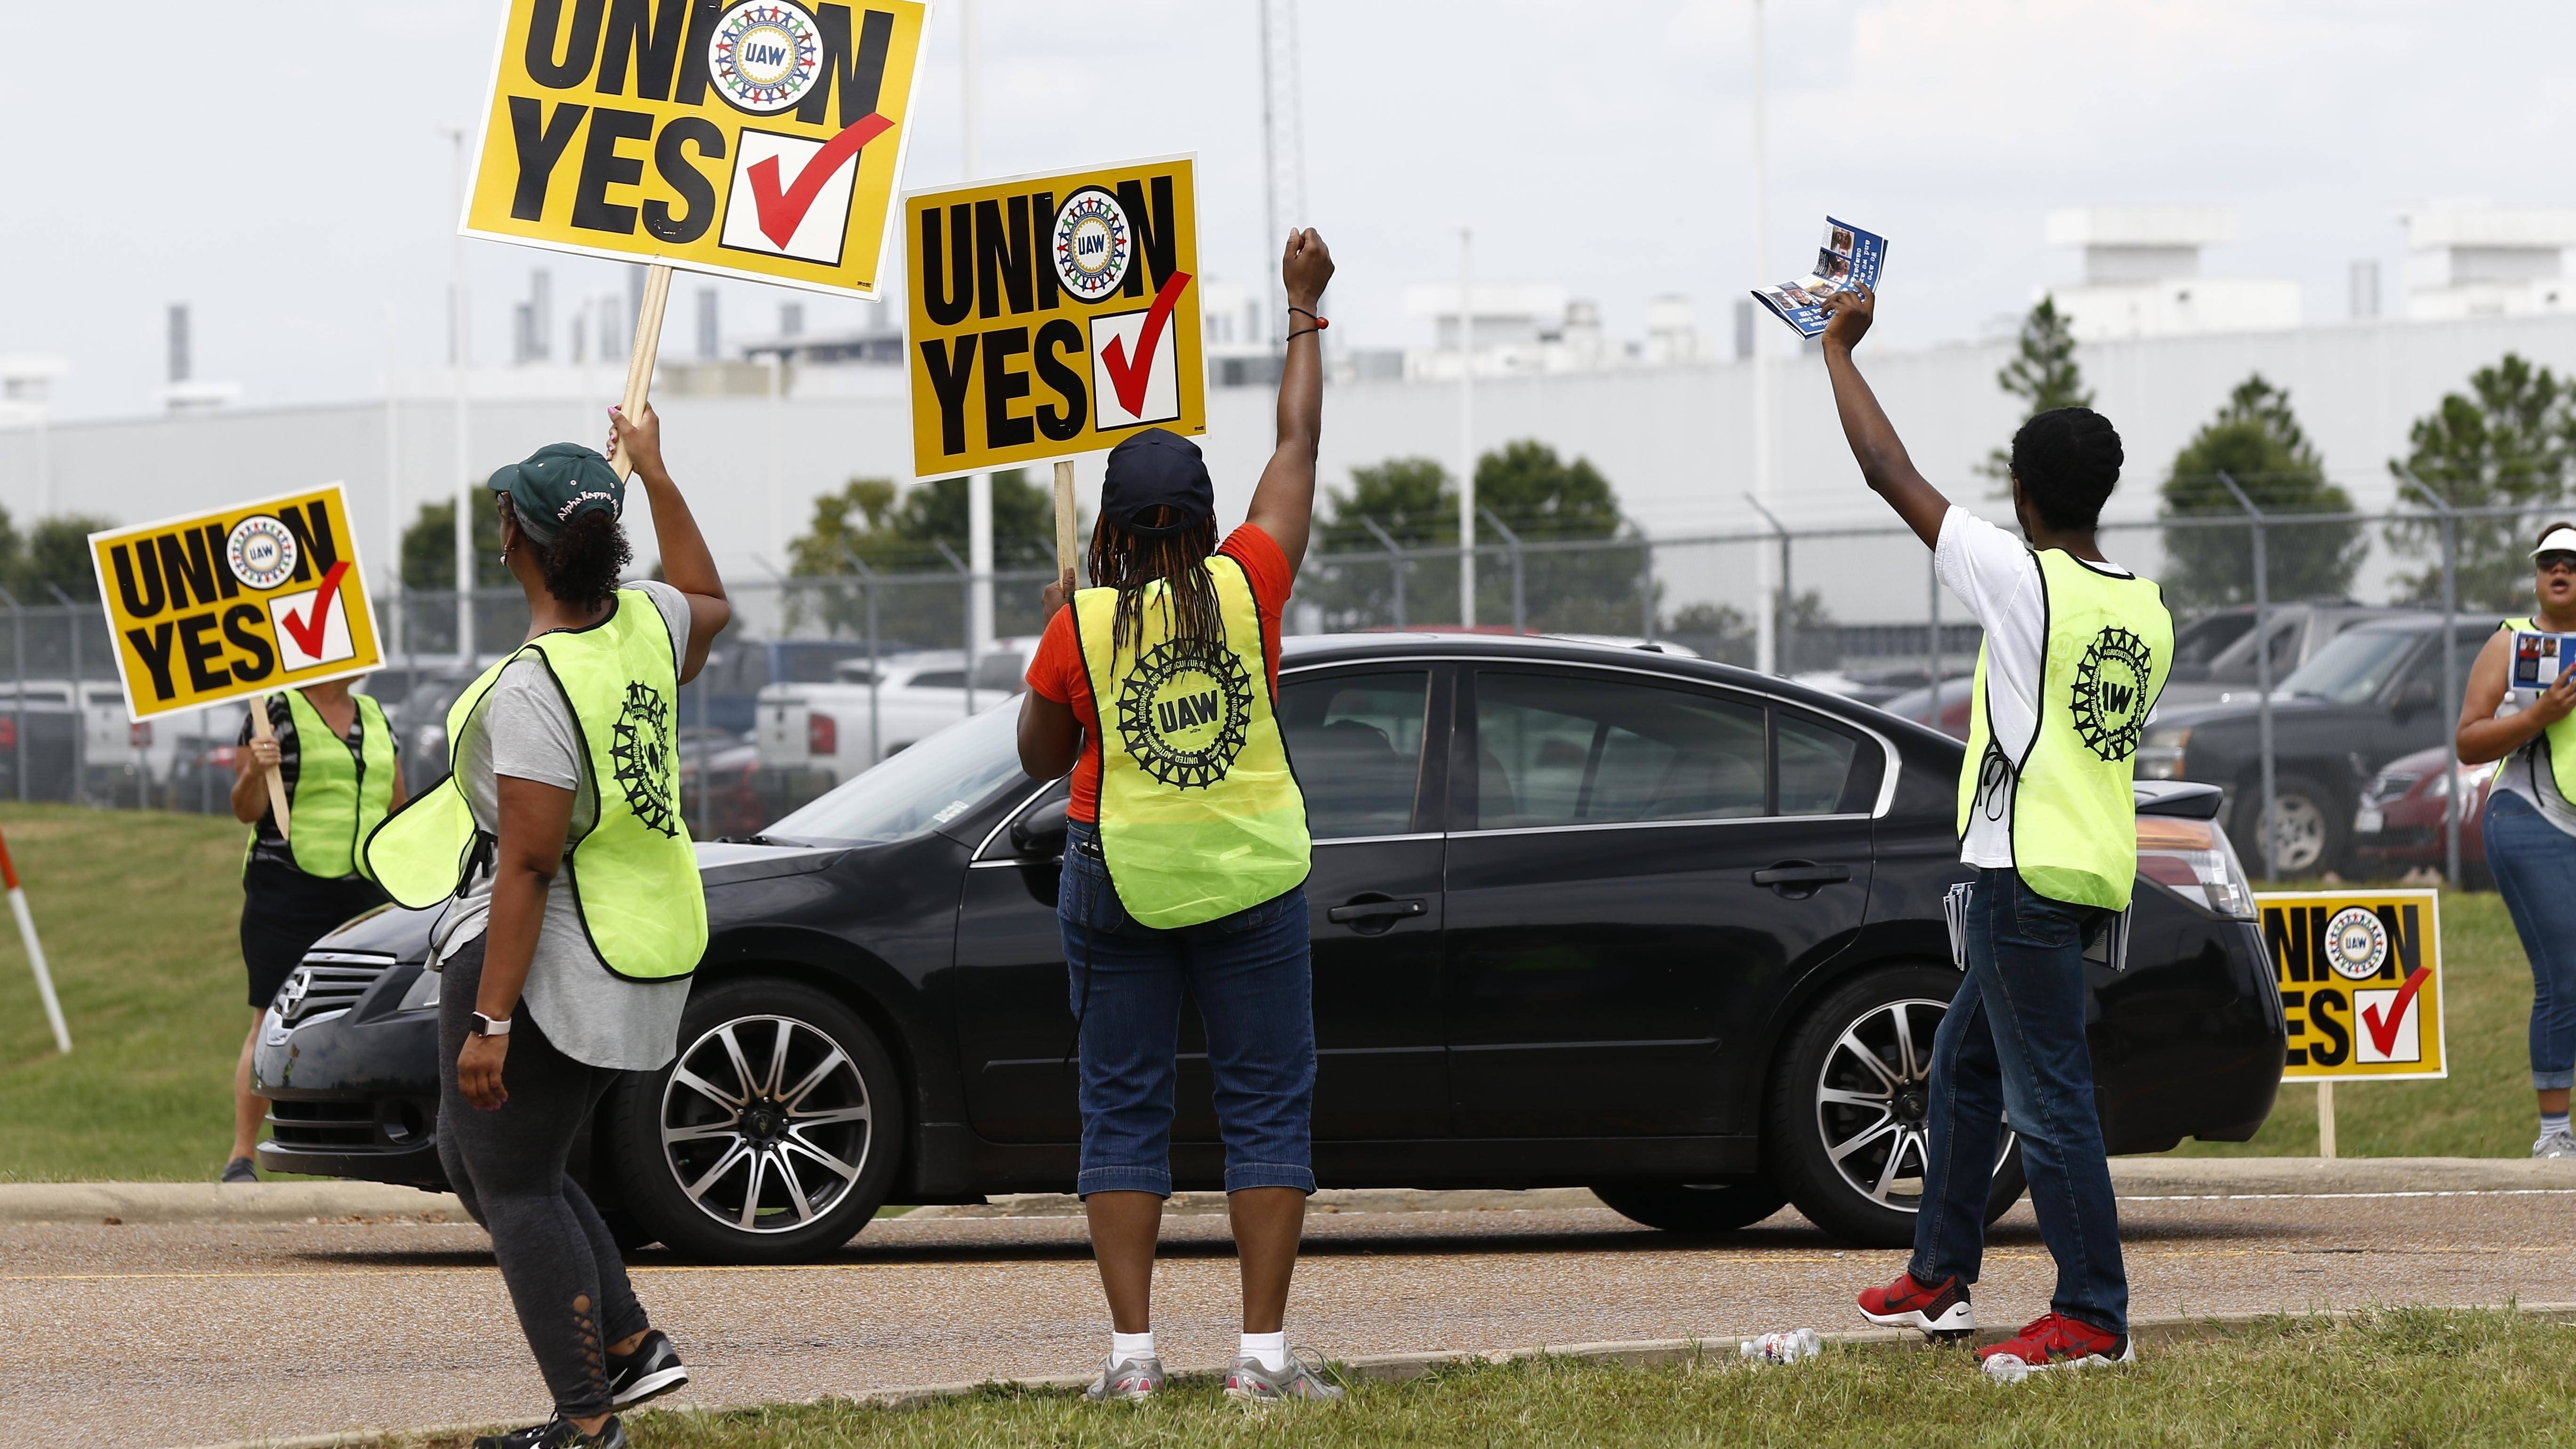 Nissan workers in MS reject bid to unionize